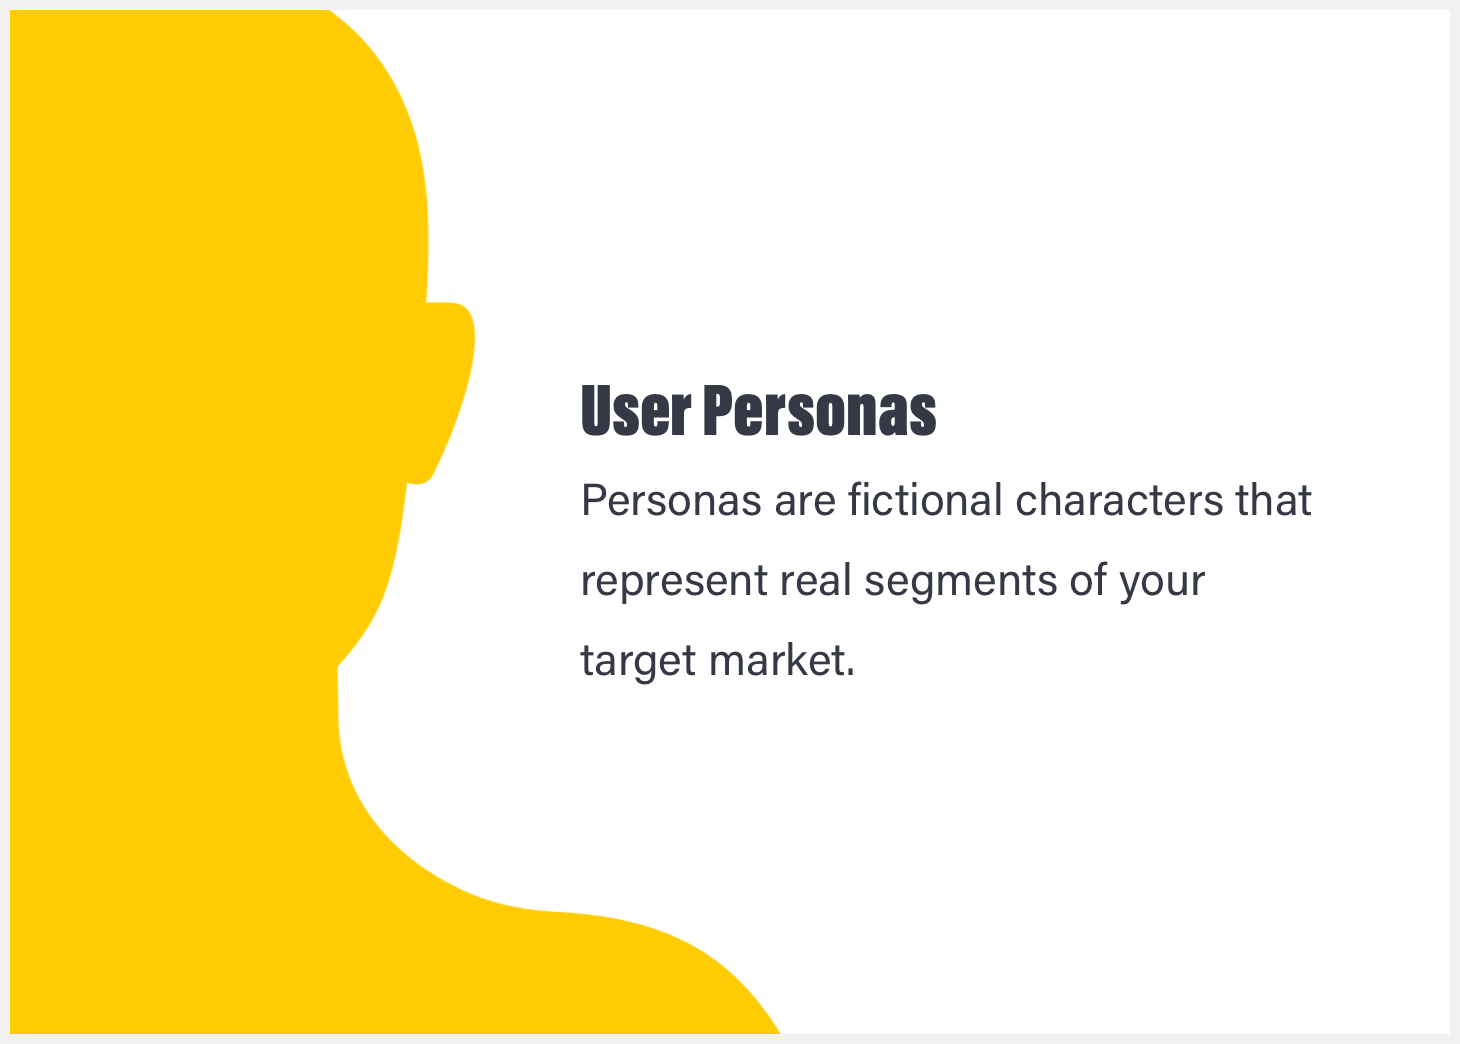 A yellow silhouette with the definition of a user persona.